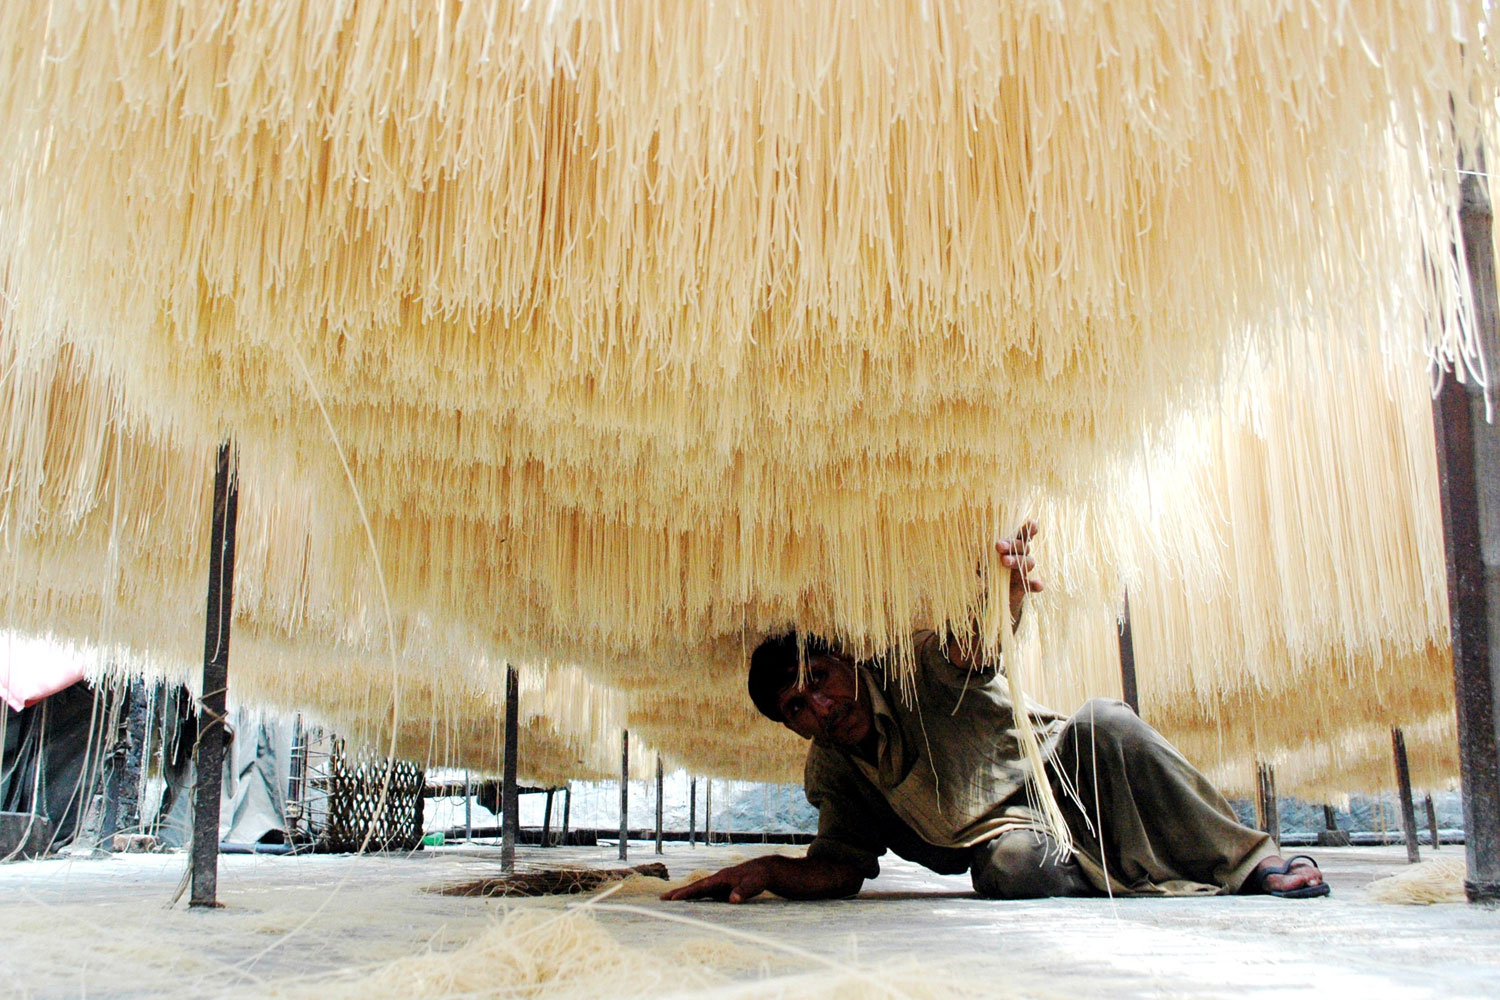 August 25, 2011. A man checks the quality of dried noodles at a local factory in eastern Pakistan's Lahore. Many Pakistani people buy noodles for an early morning meal before they start fasting during the Muslims fasting month of Ramadan.